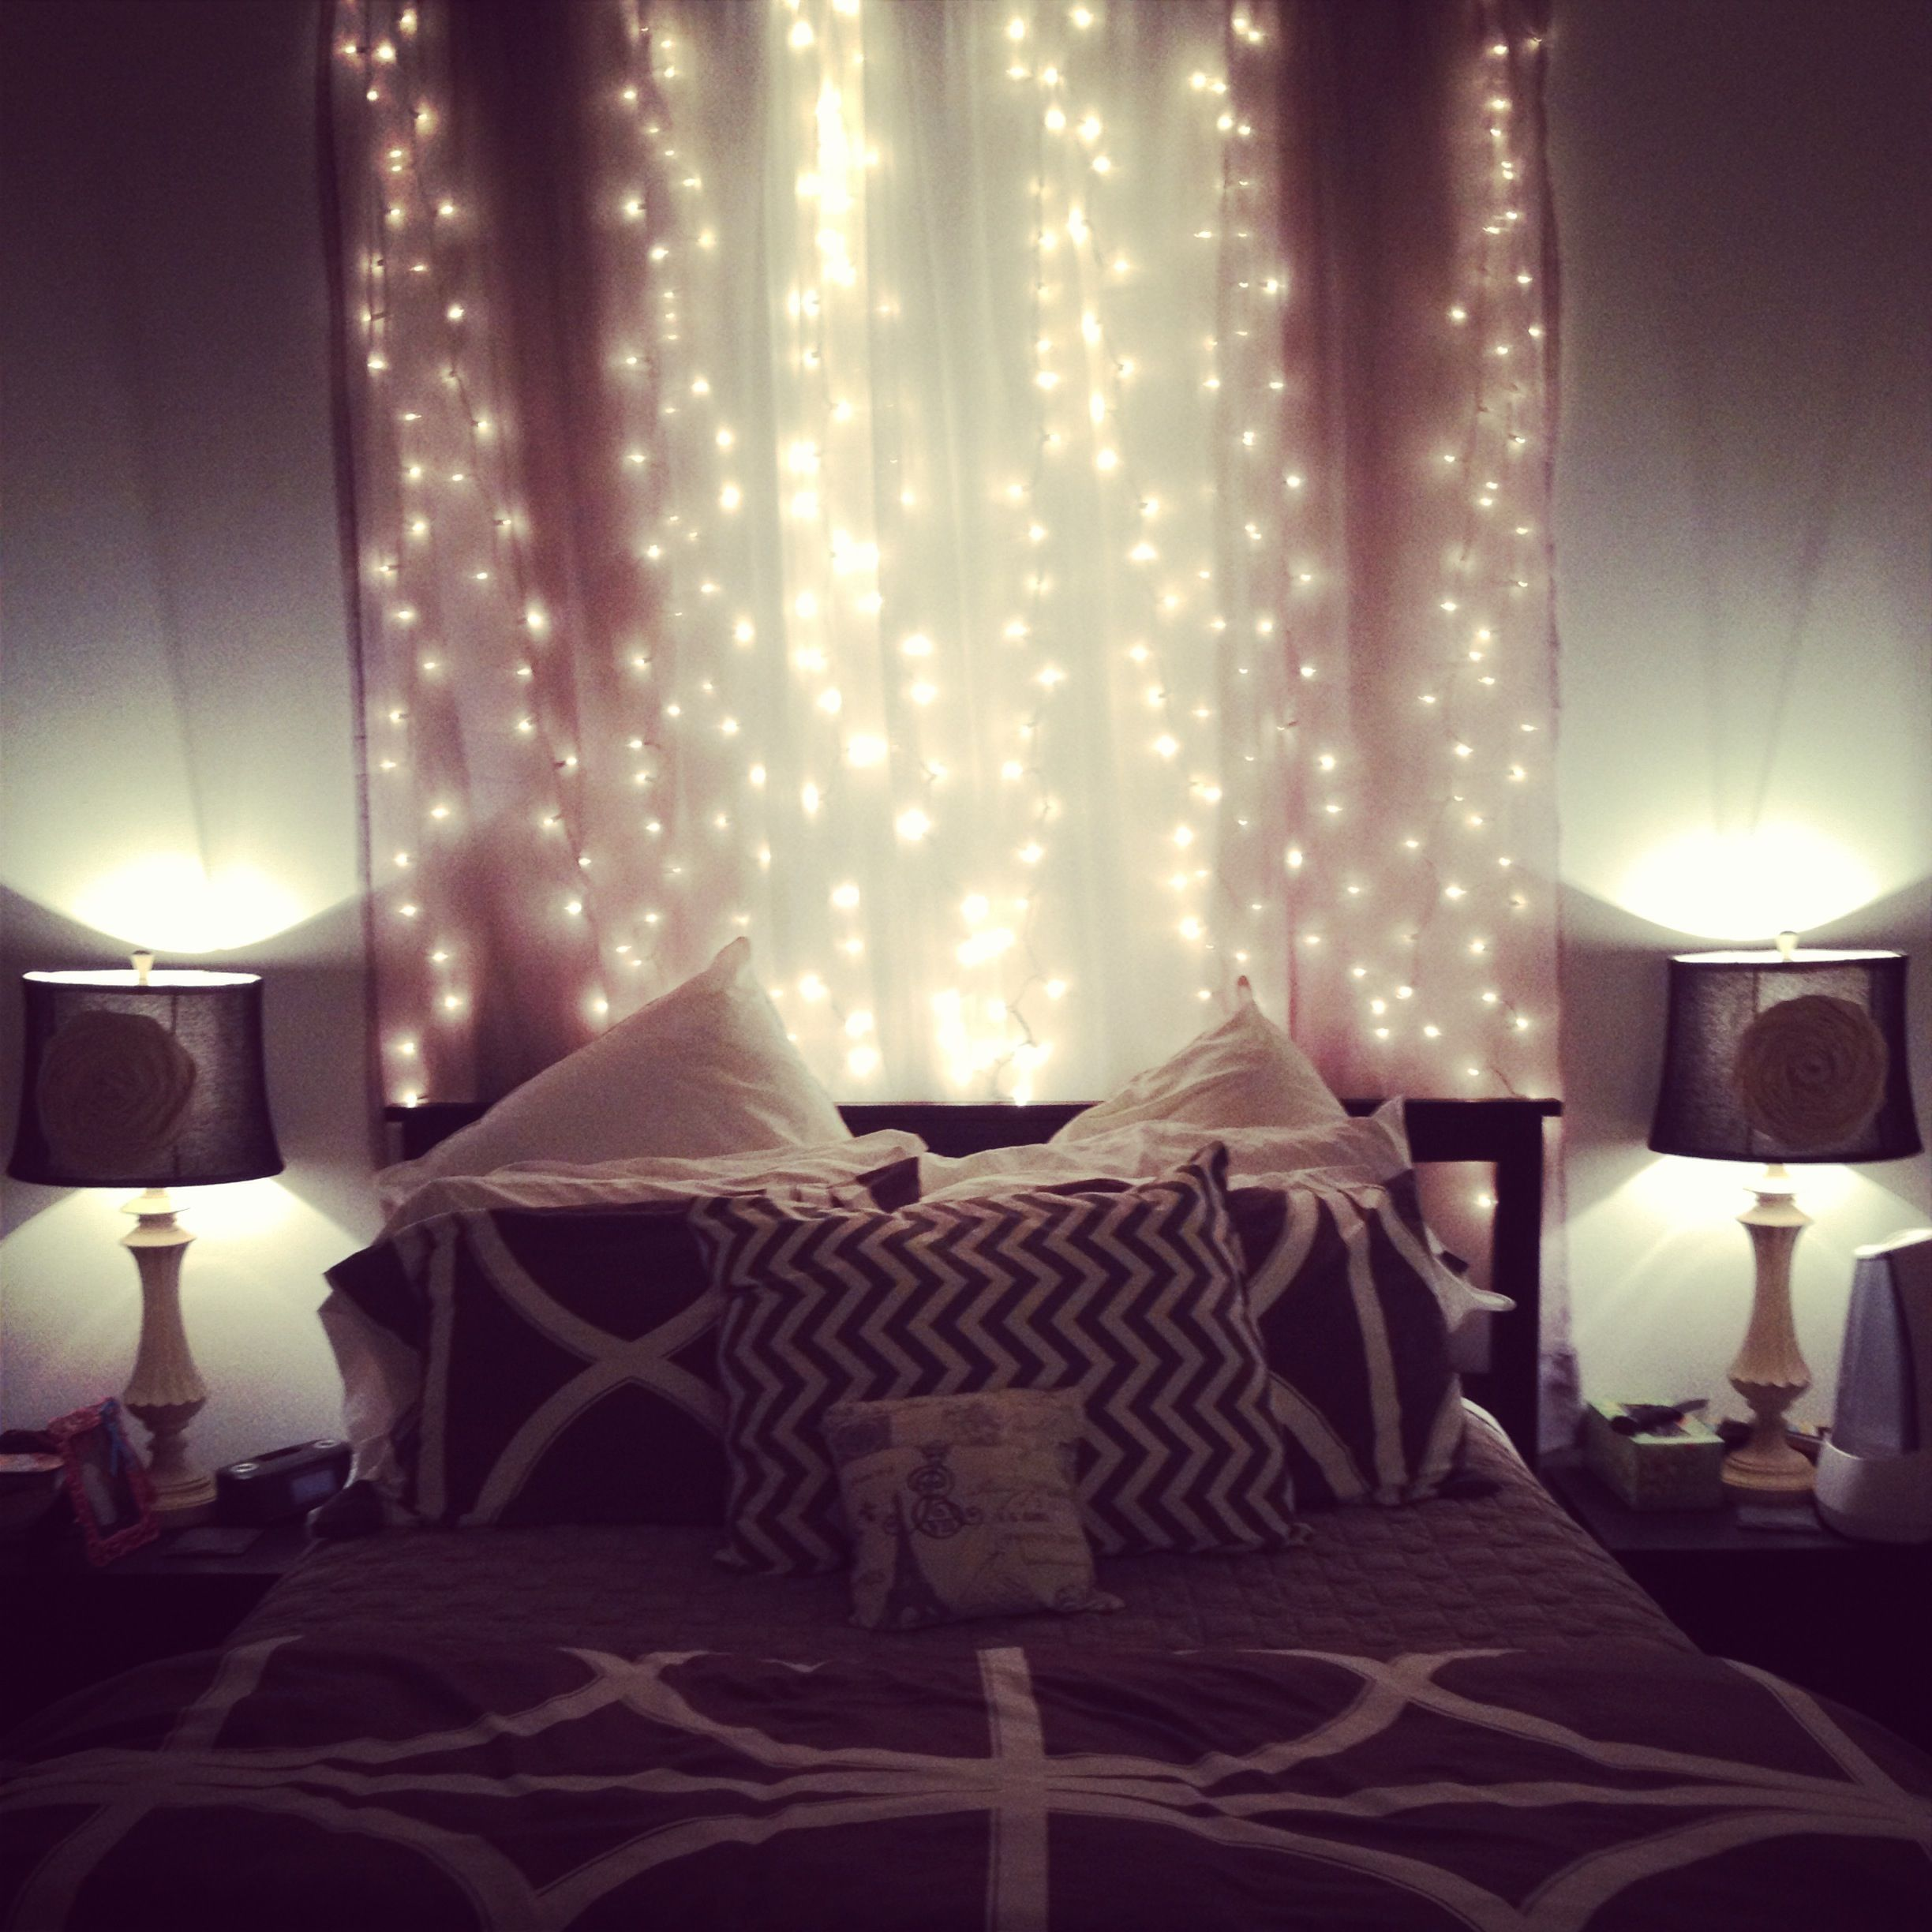 Fairy Lights In The Bedroom Elegant Bedroom Inspiration